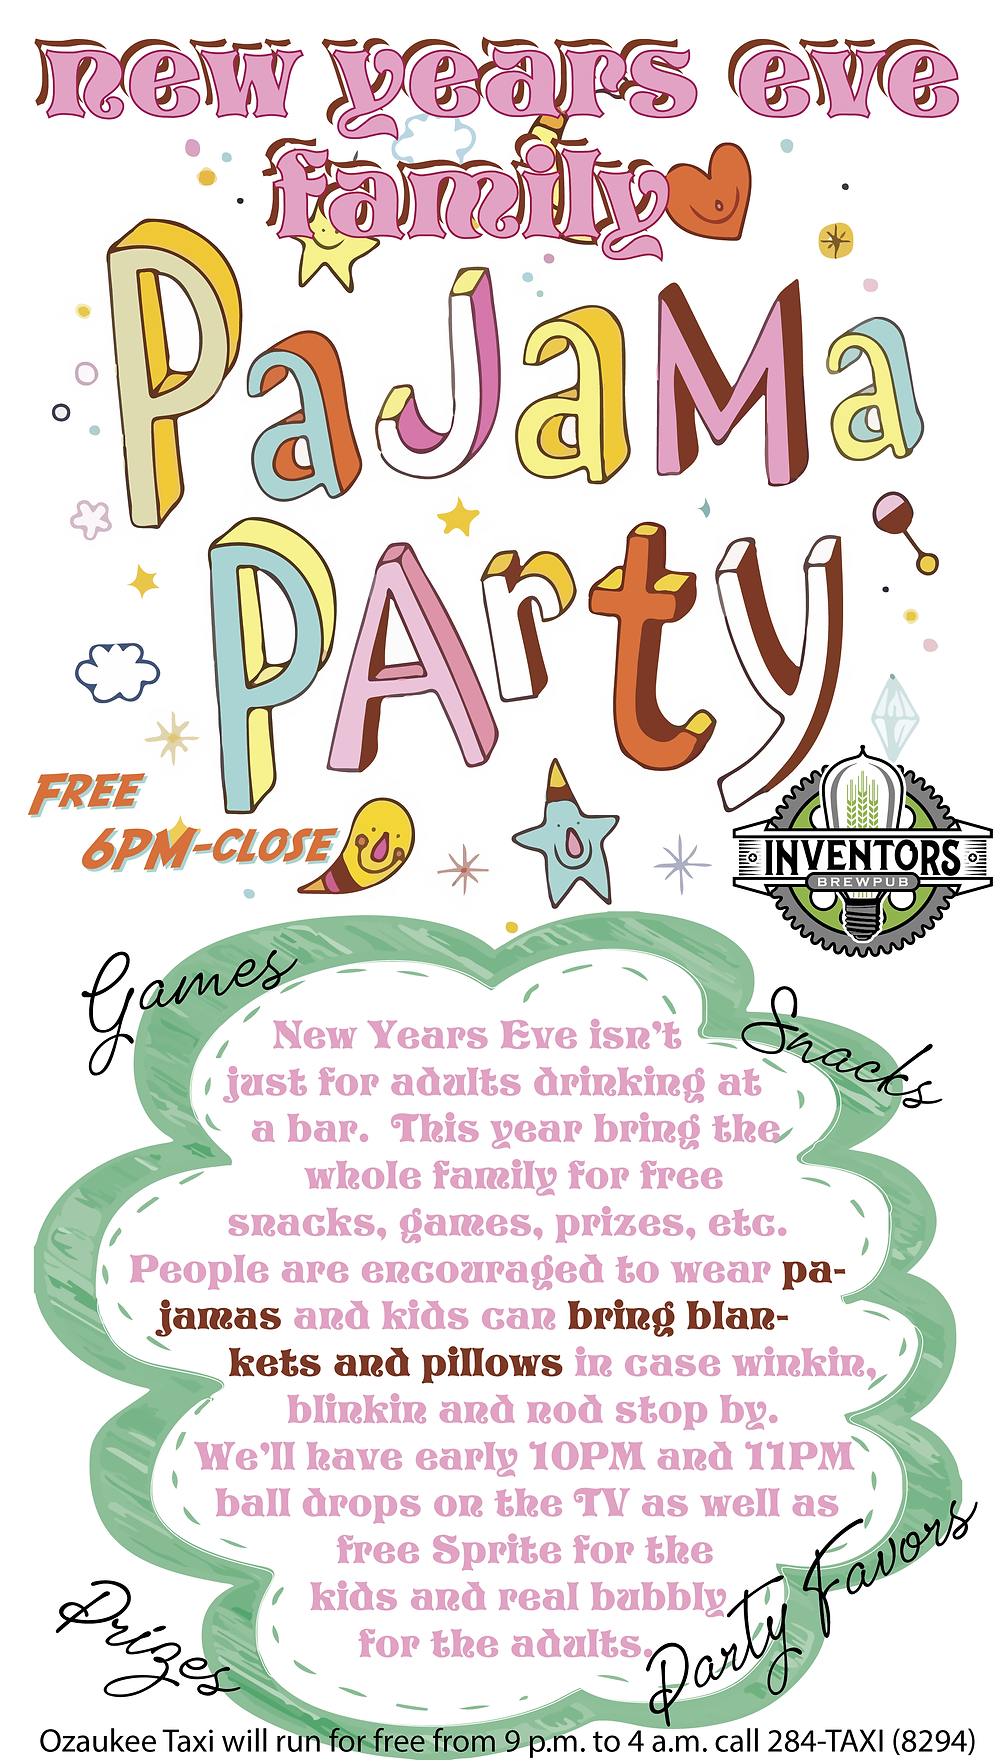 pajama party poster for new years eve 6PM